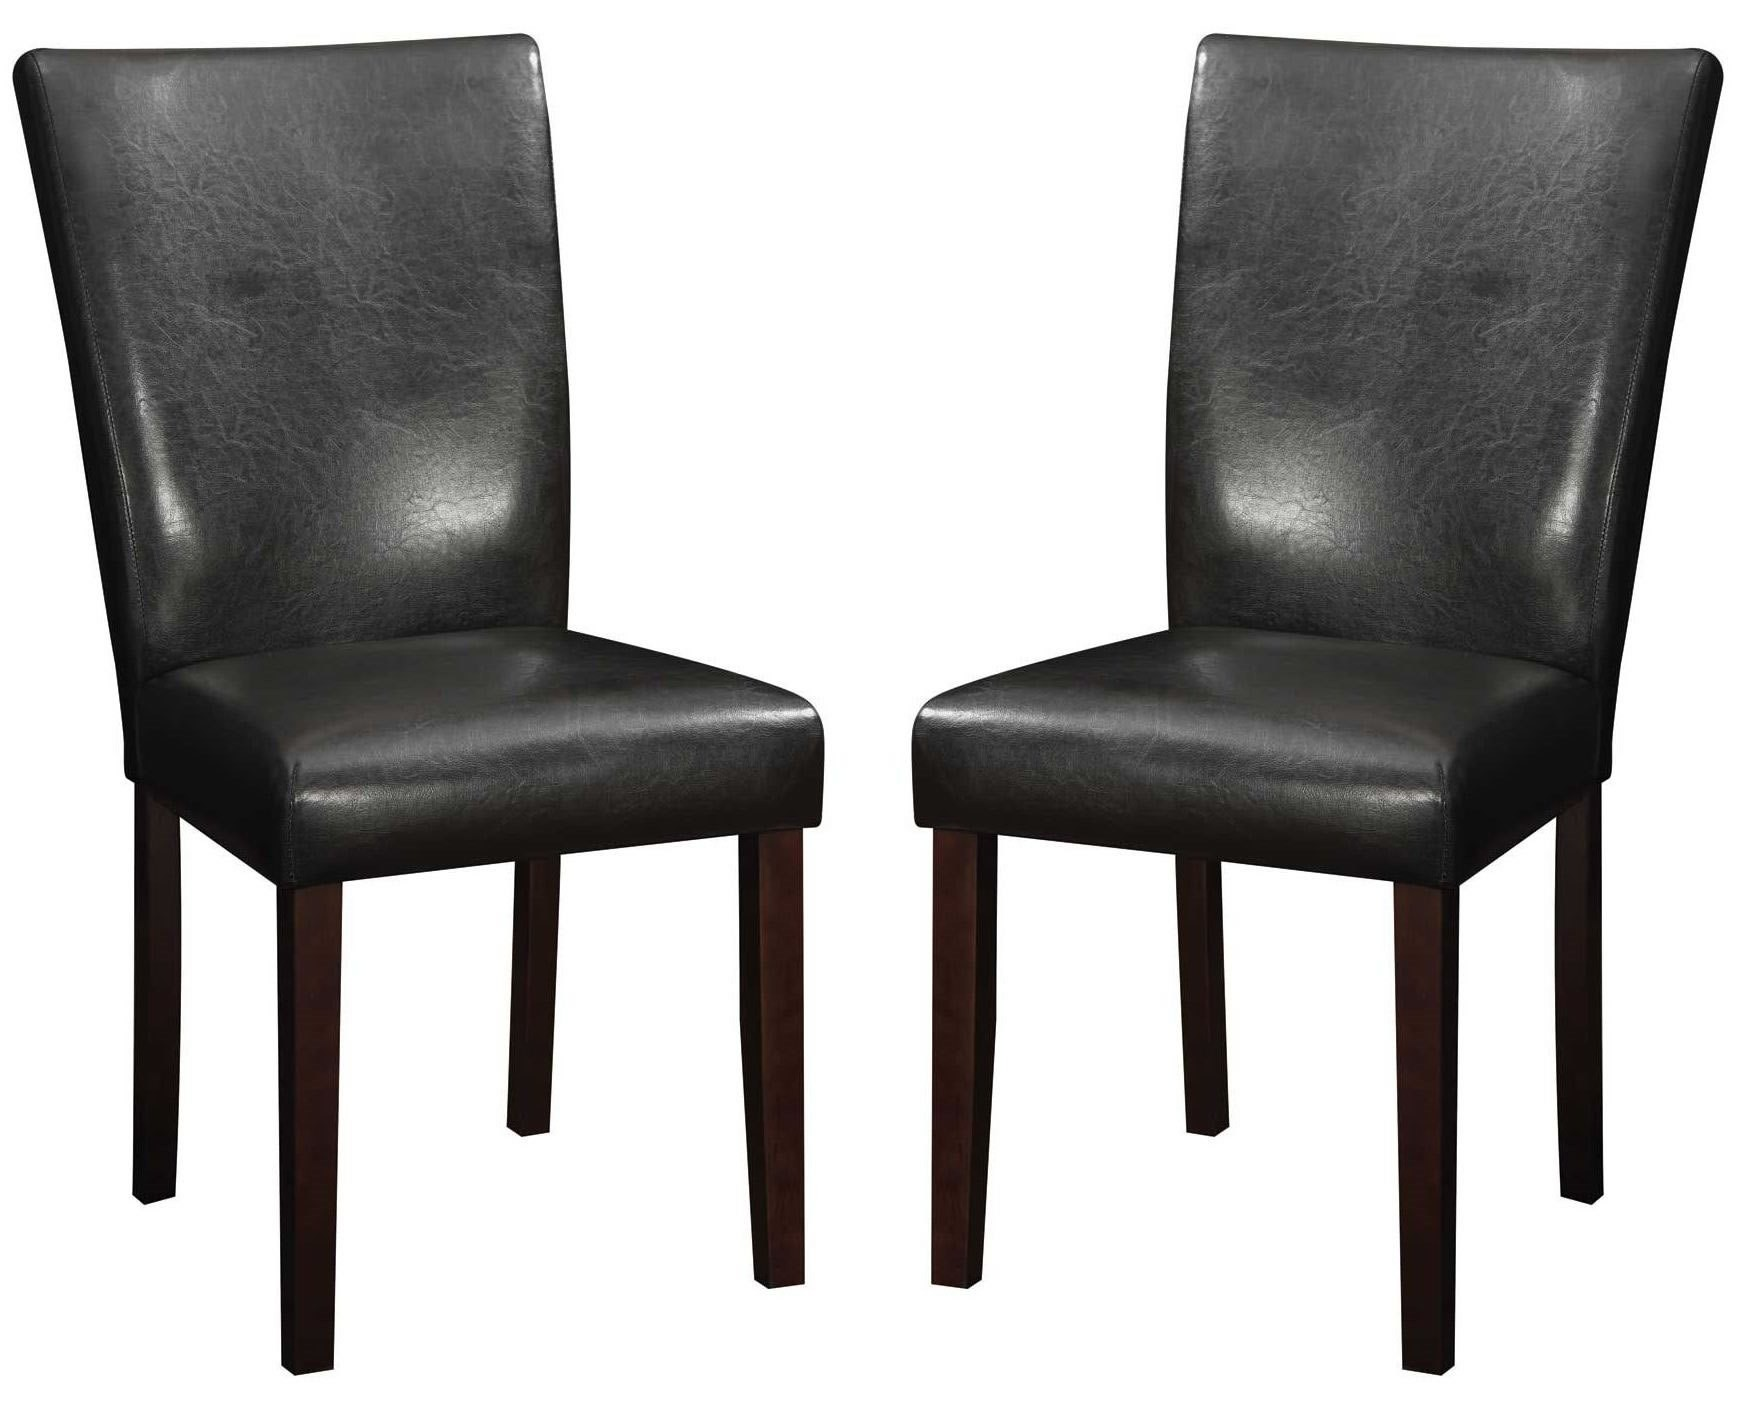 orange parsons chair cover hire lancashire westbrook brown leather dining set of 2 from coaster